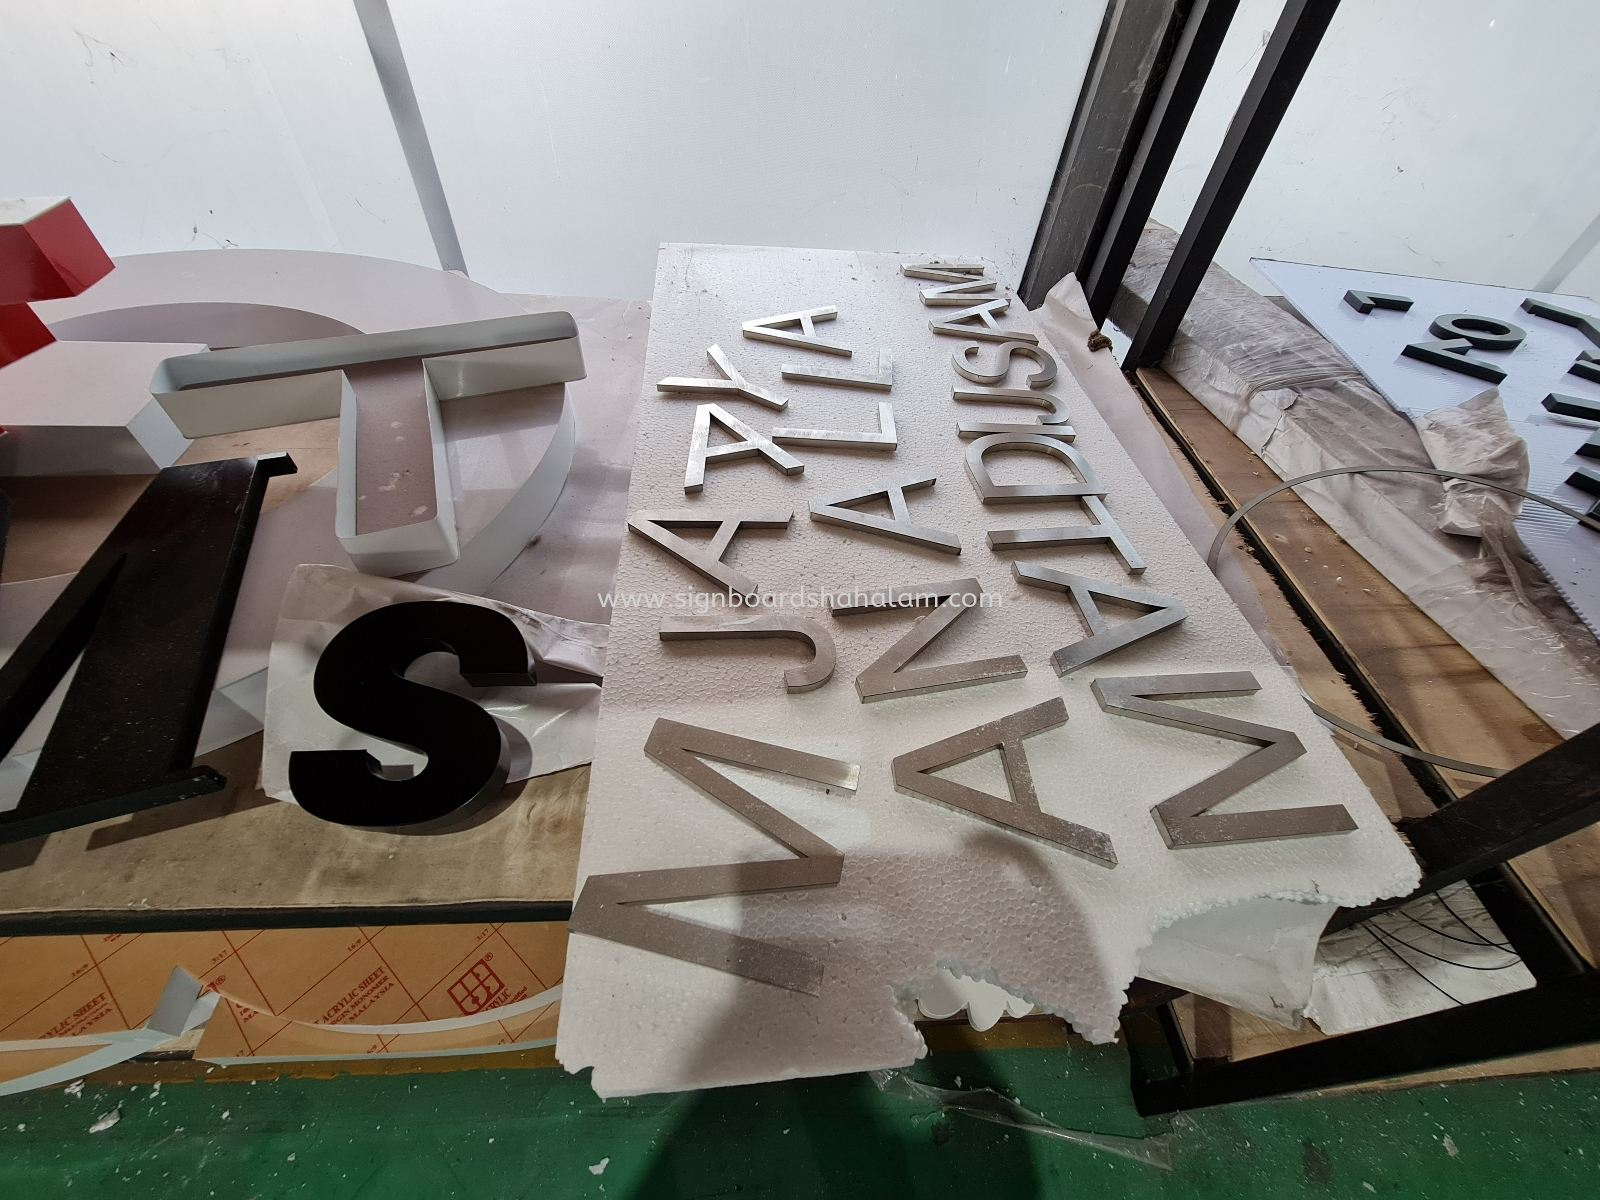 Stainless Steel Silver Hairline Box Up Lettering